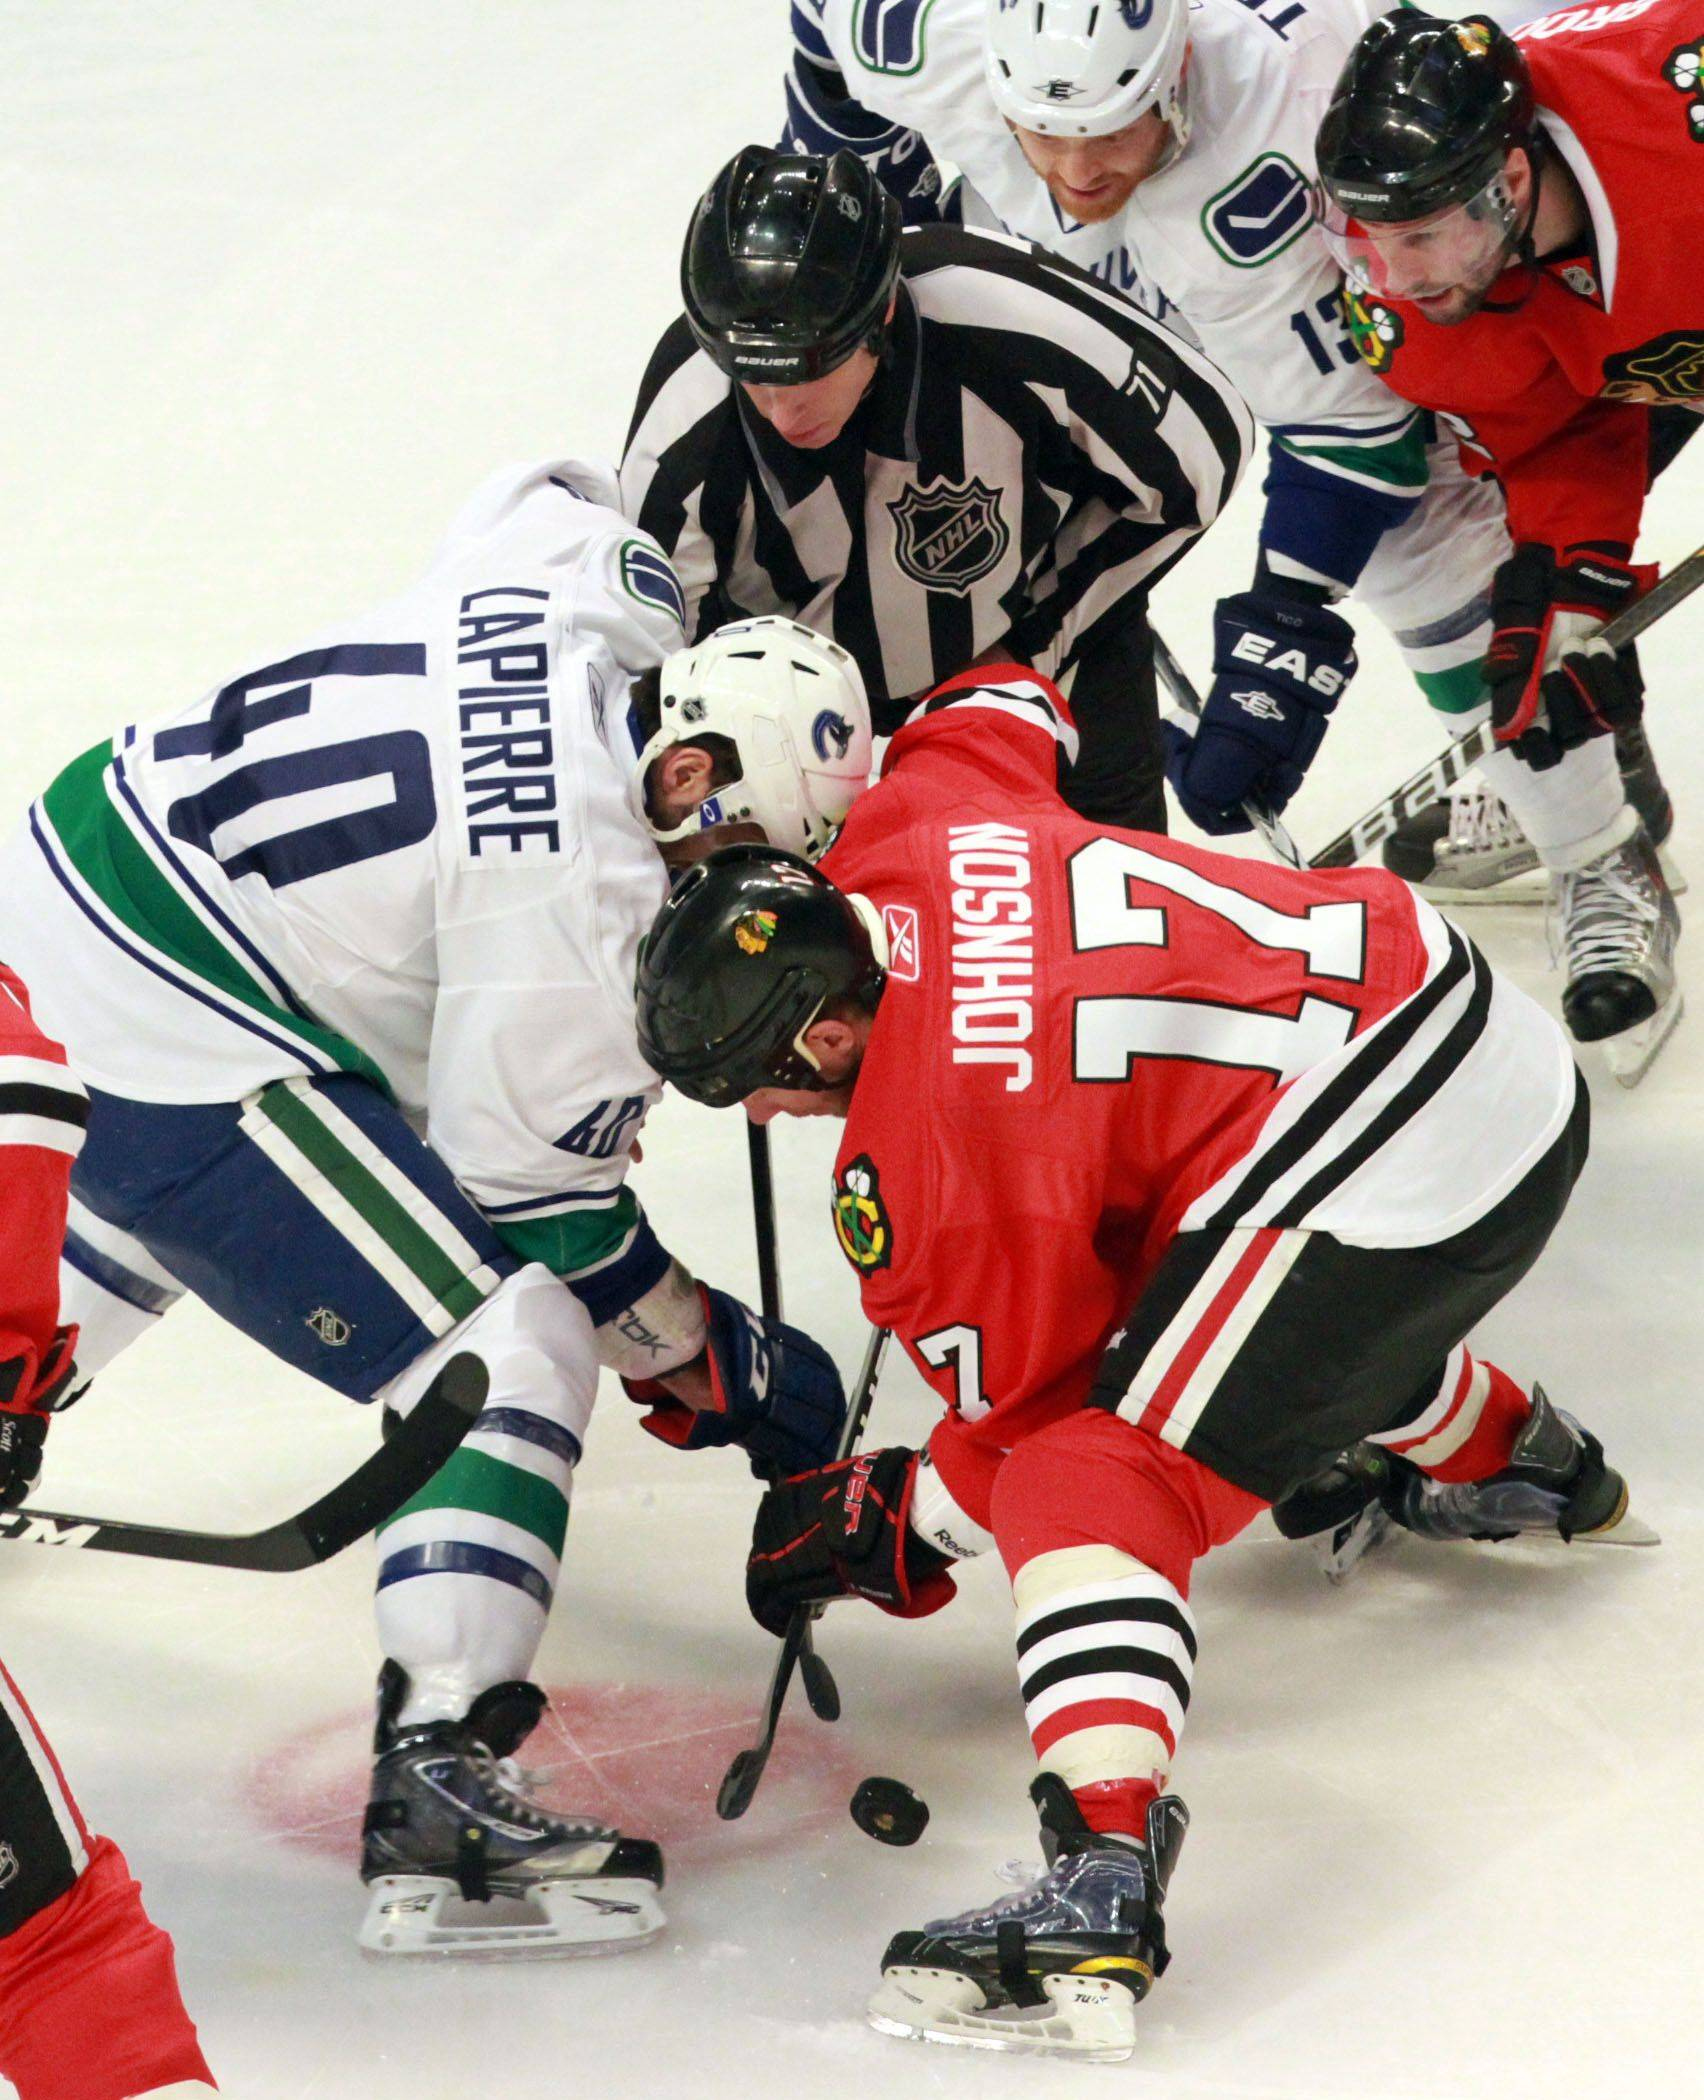 Chicago Blackhawks Ryan Johnson in a face off with Vancouver Canucks Maxium Lapierre in game 6 of the Stanley Cup quarterfinals at the United Center in Chicago on Sunday.